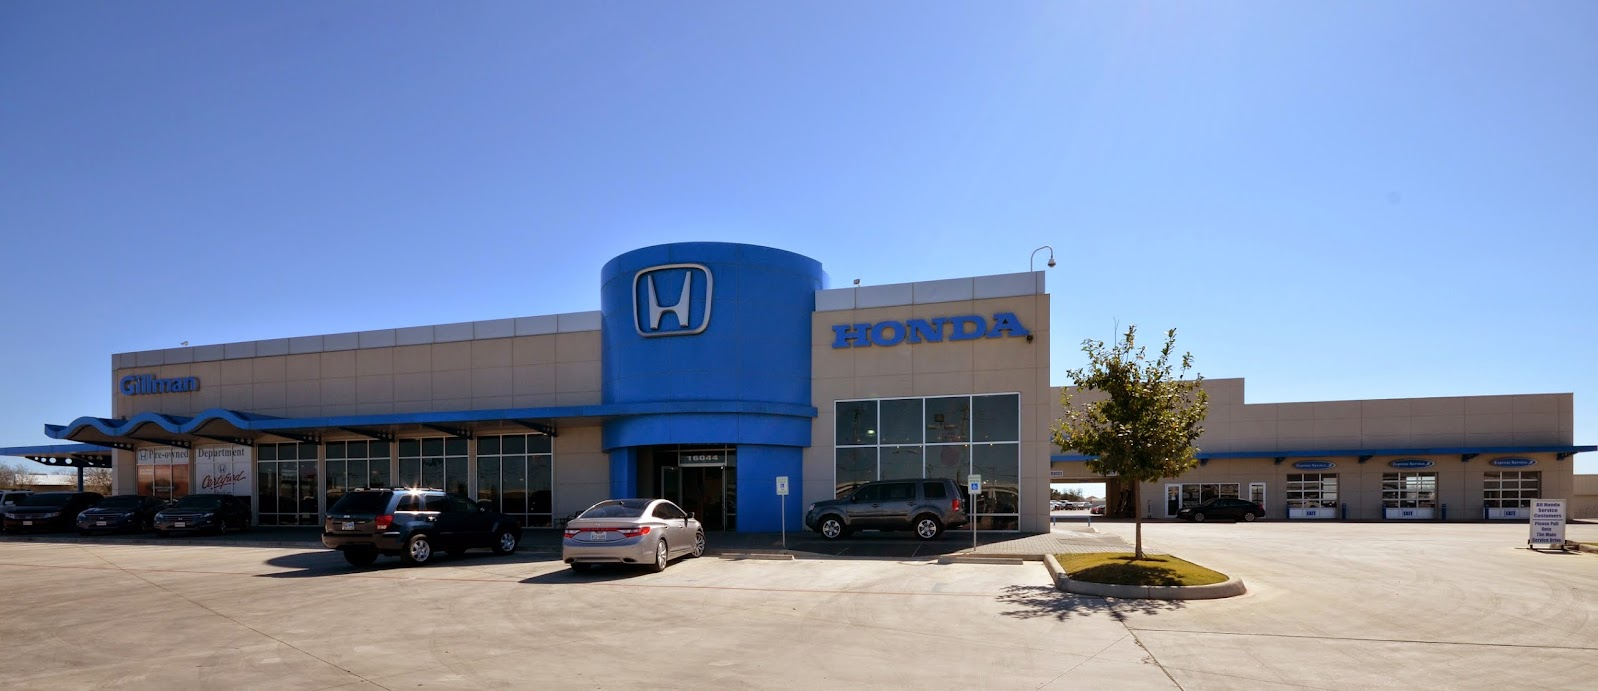 Beautiful For Over 75 Years, Gillman Honda San Antonio Has Been Your Go To Location  For A New Honda Car In Schertz, TX. Weu0027re Proud To Be A Part Of This  Community, ...